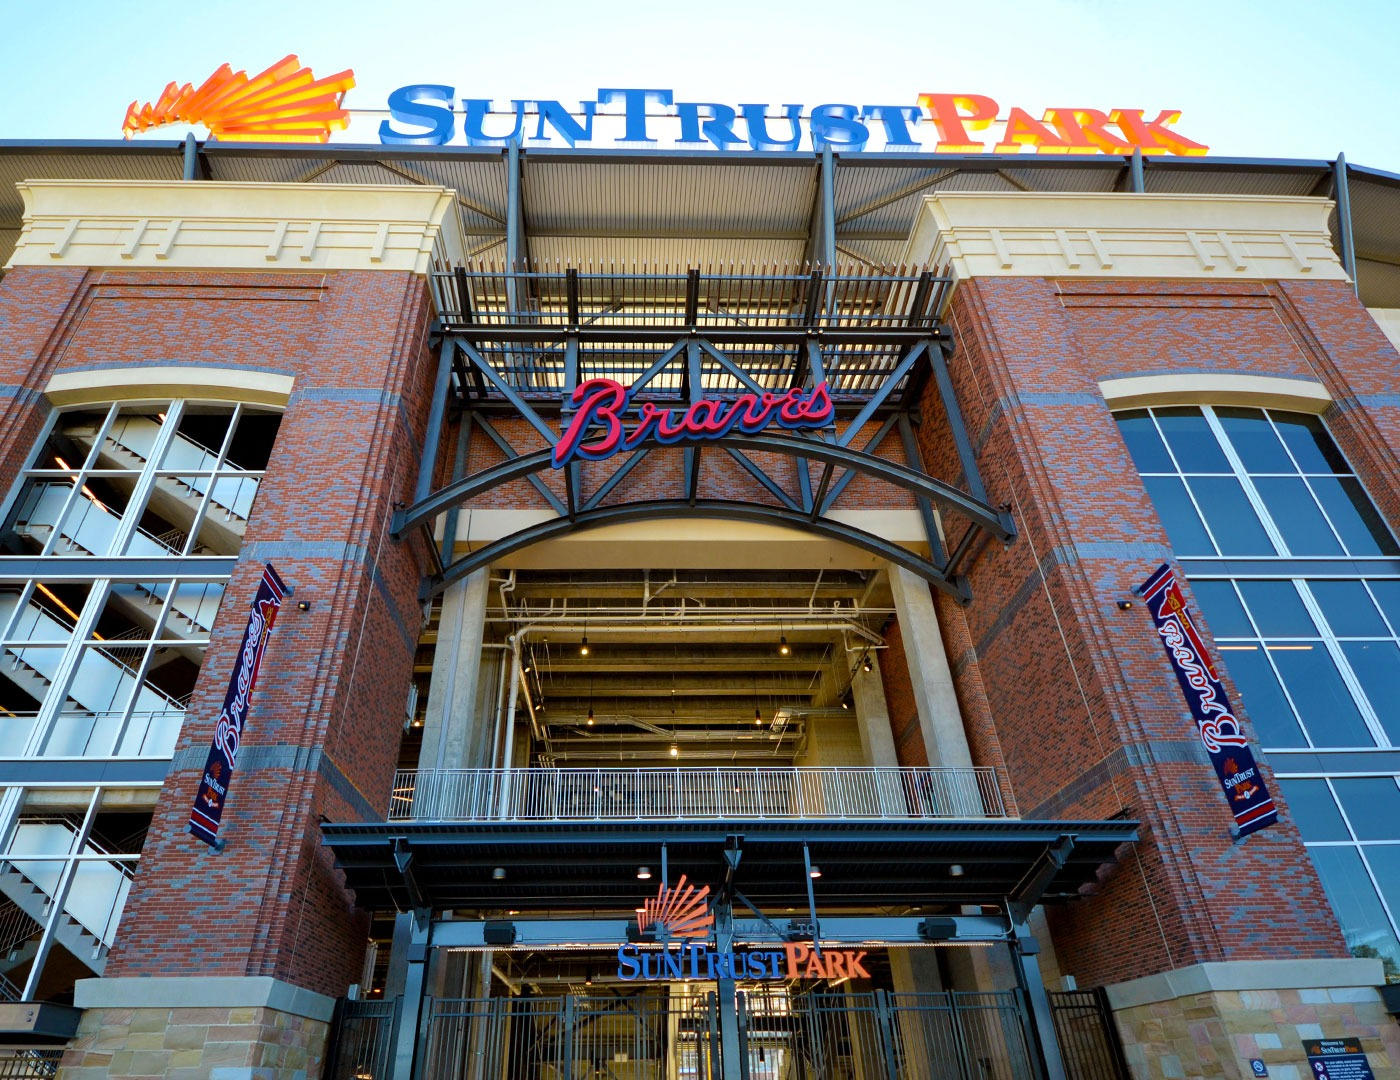 scrailing_suntrustpark_exterior_balcony_entrance_picket